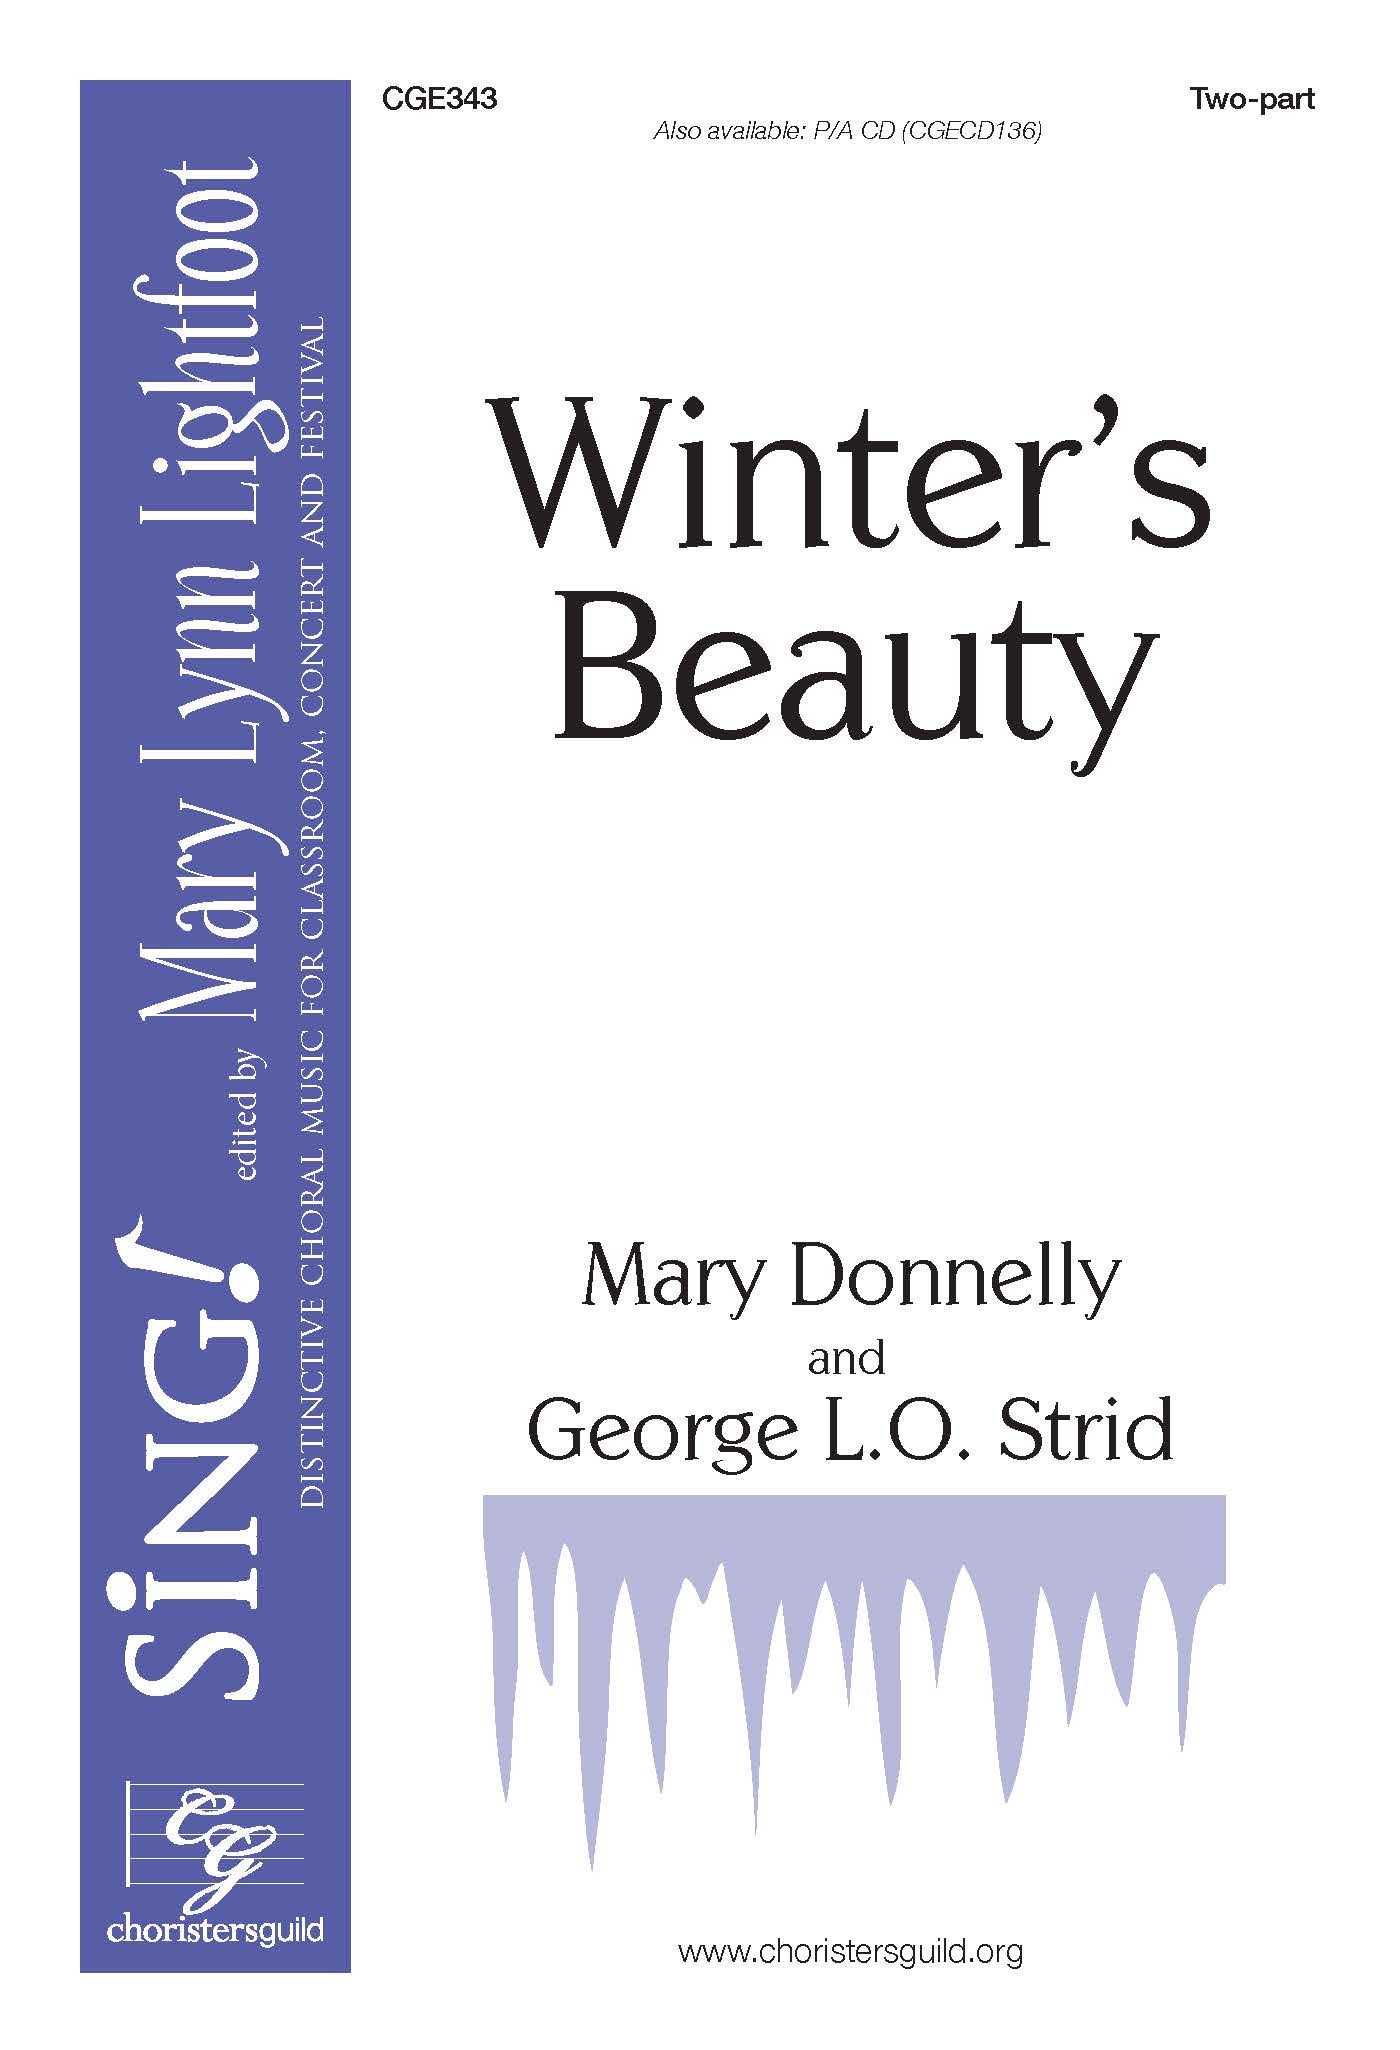 Winter's Beauty - Two-part